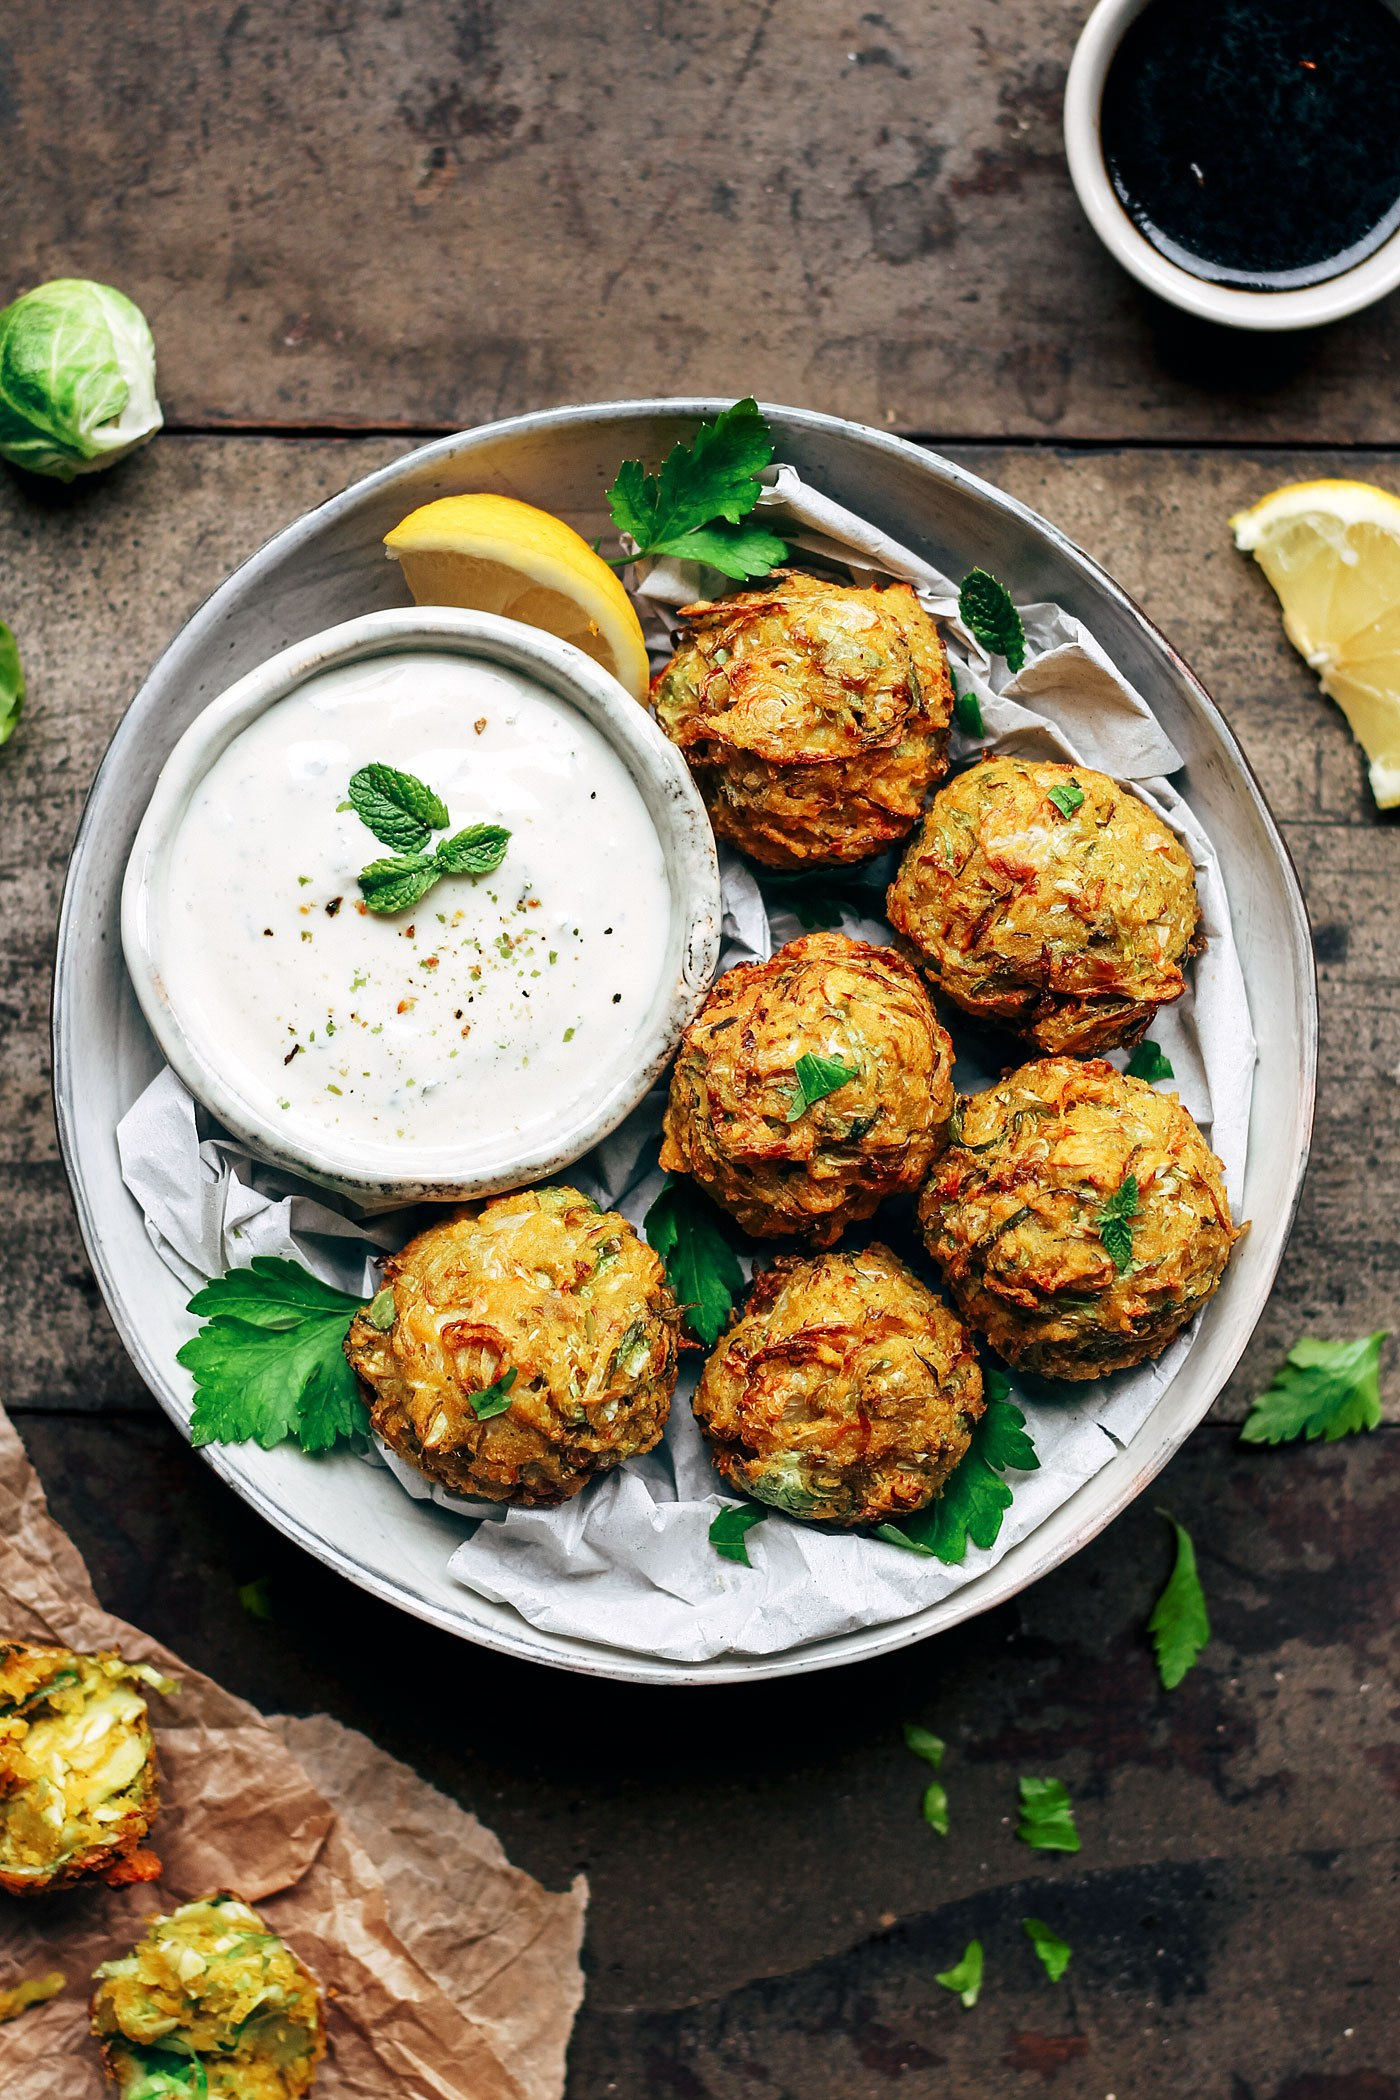 brussel-sprouts-bhaji-vegan-fried-chickpea-balls-23.jpg